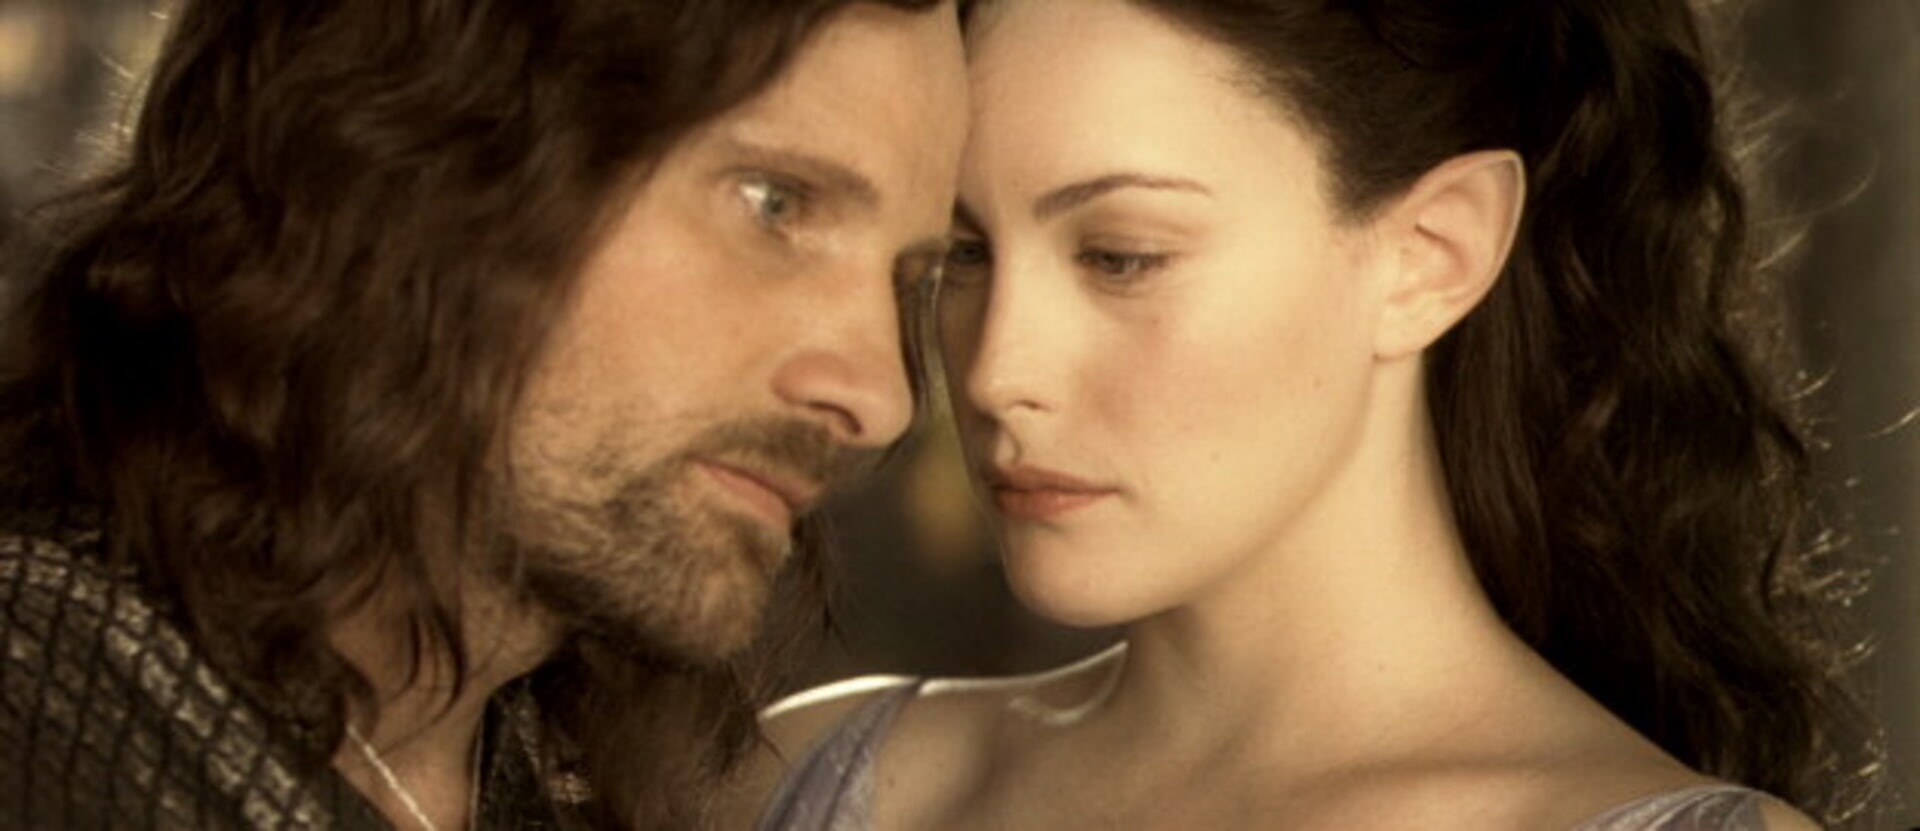 The Lord of the Rings: The Two Towers - Image 49